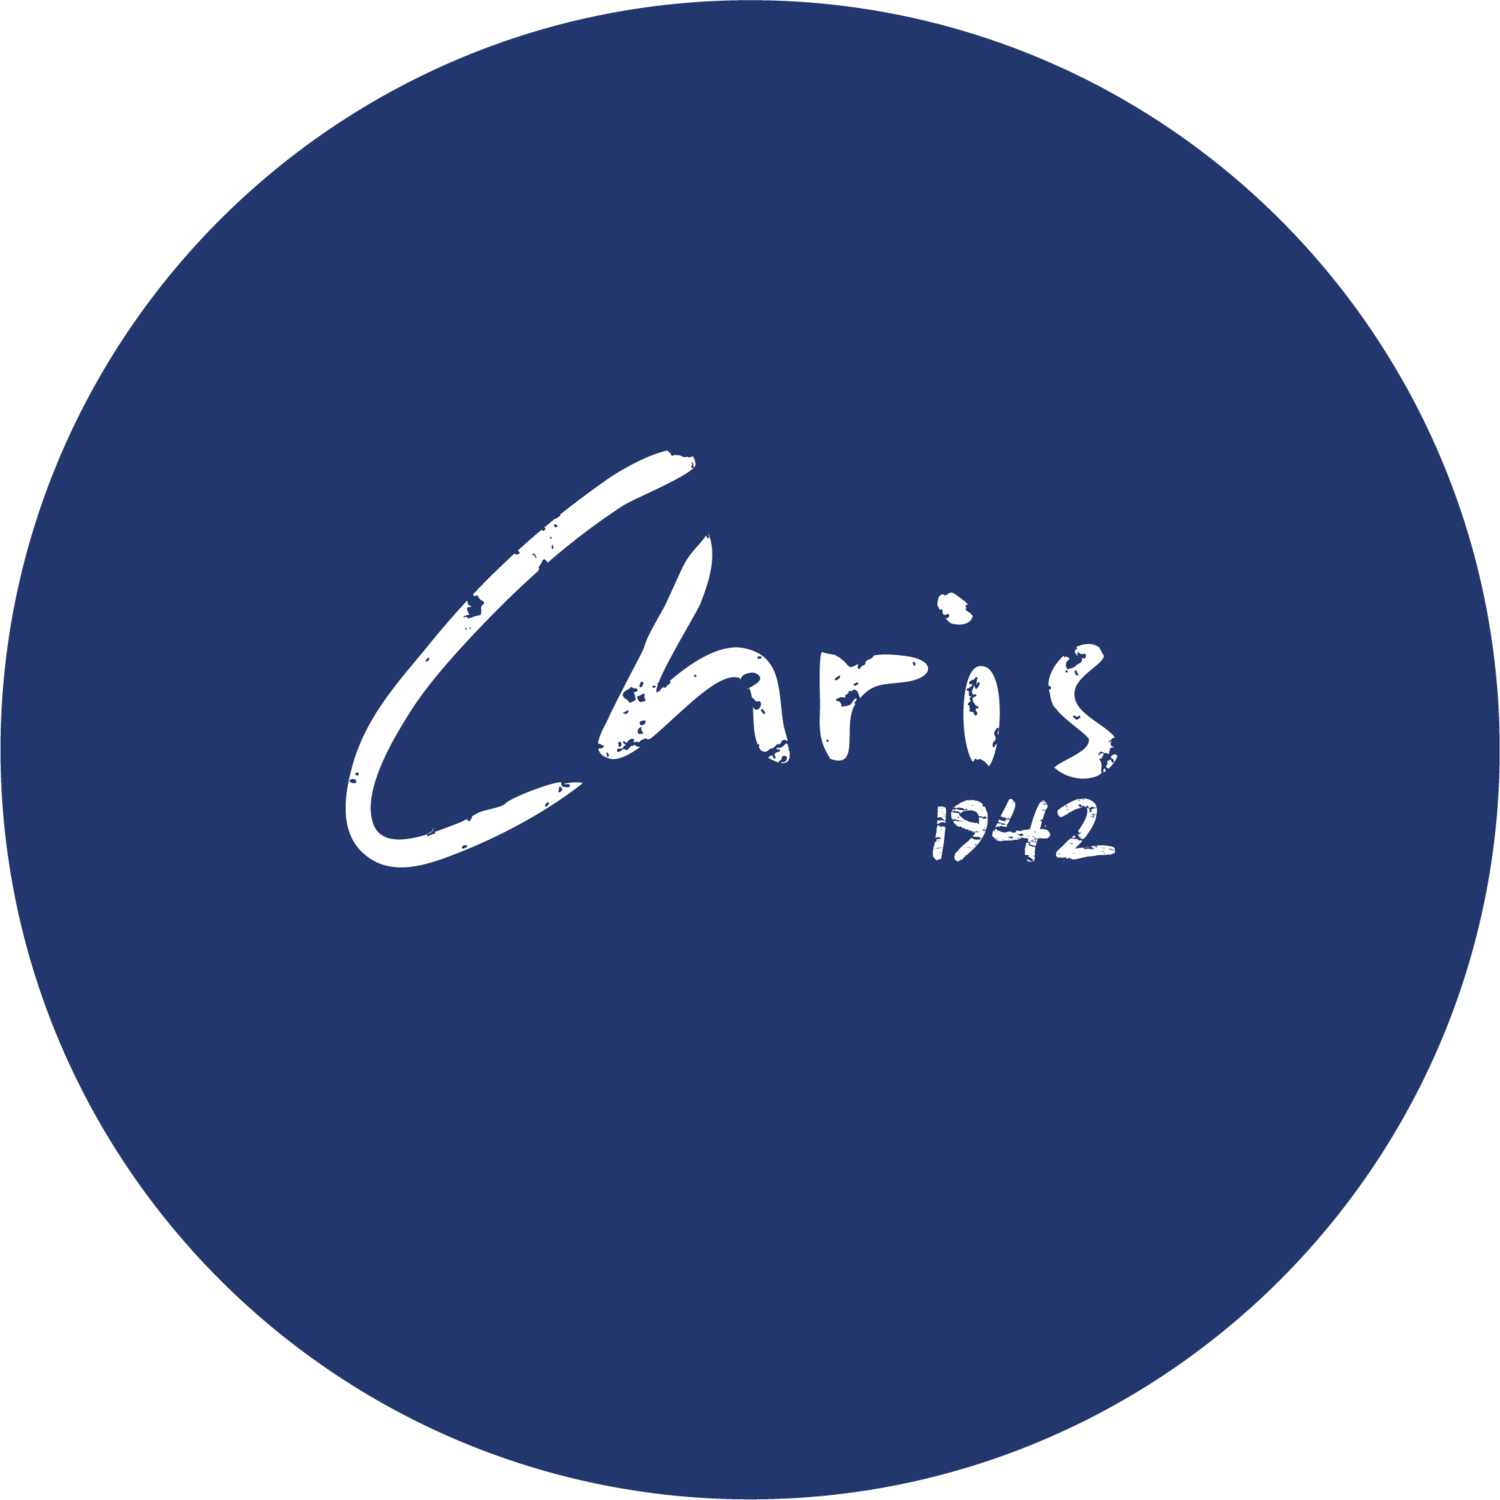 Project Chris